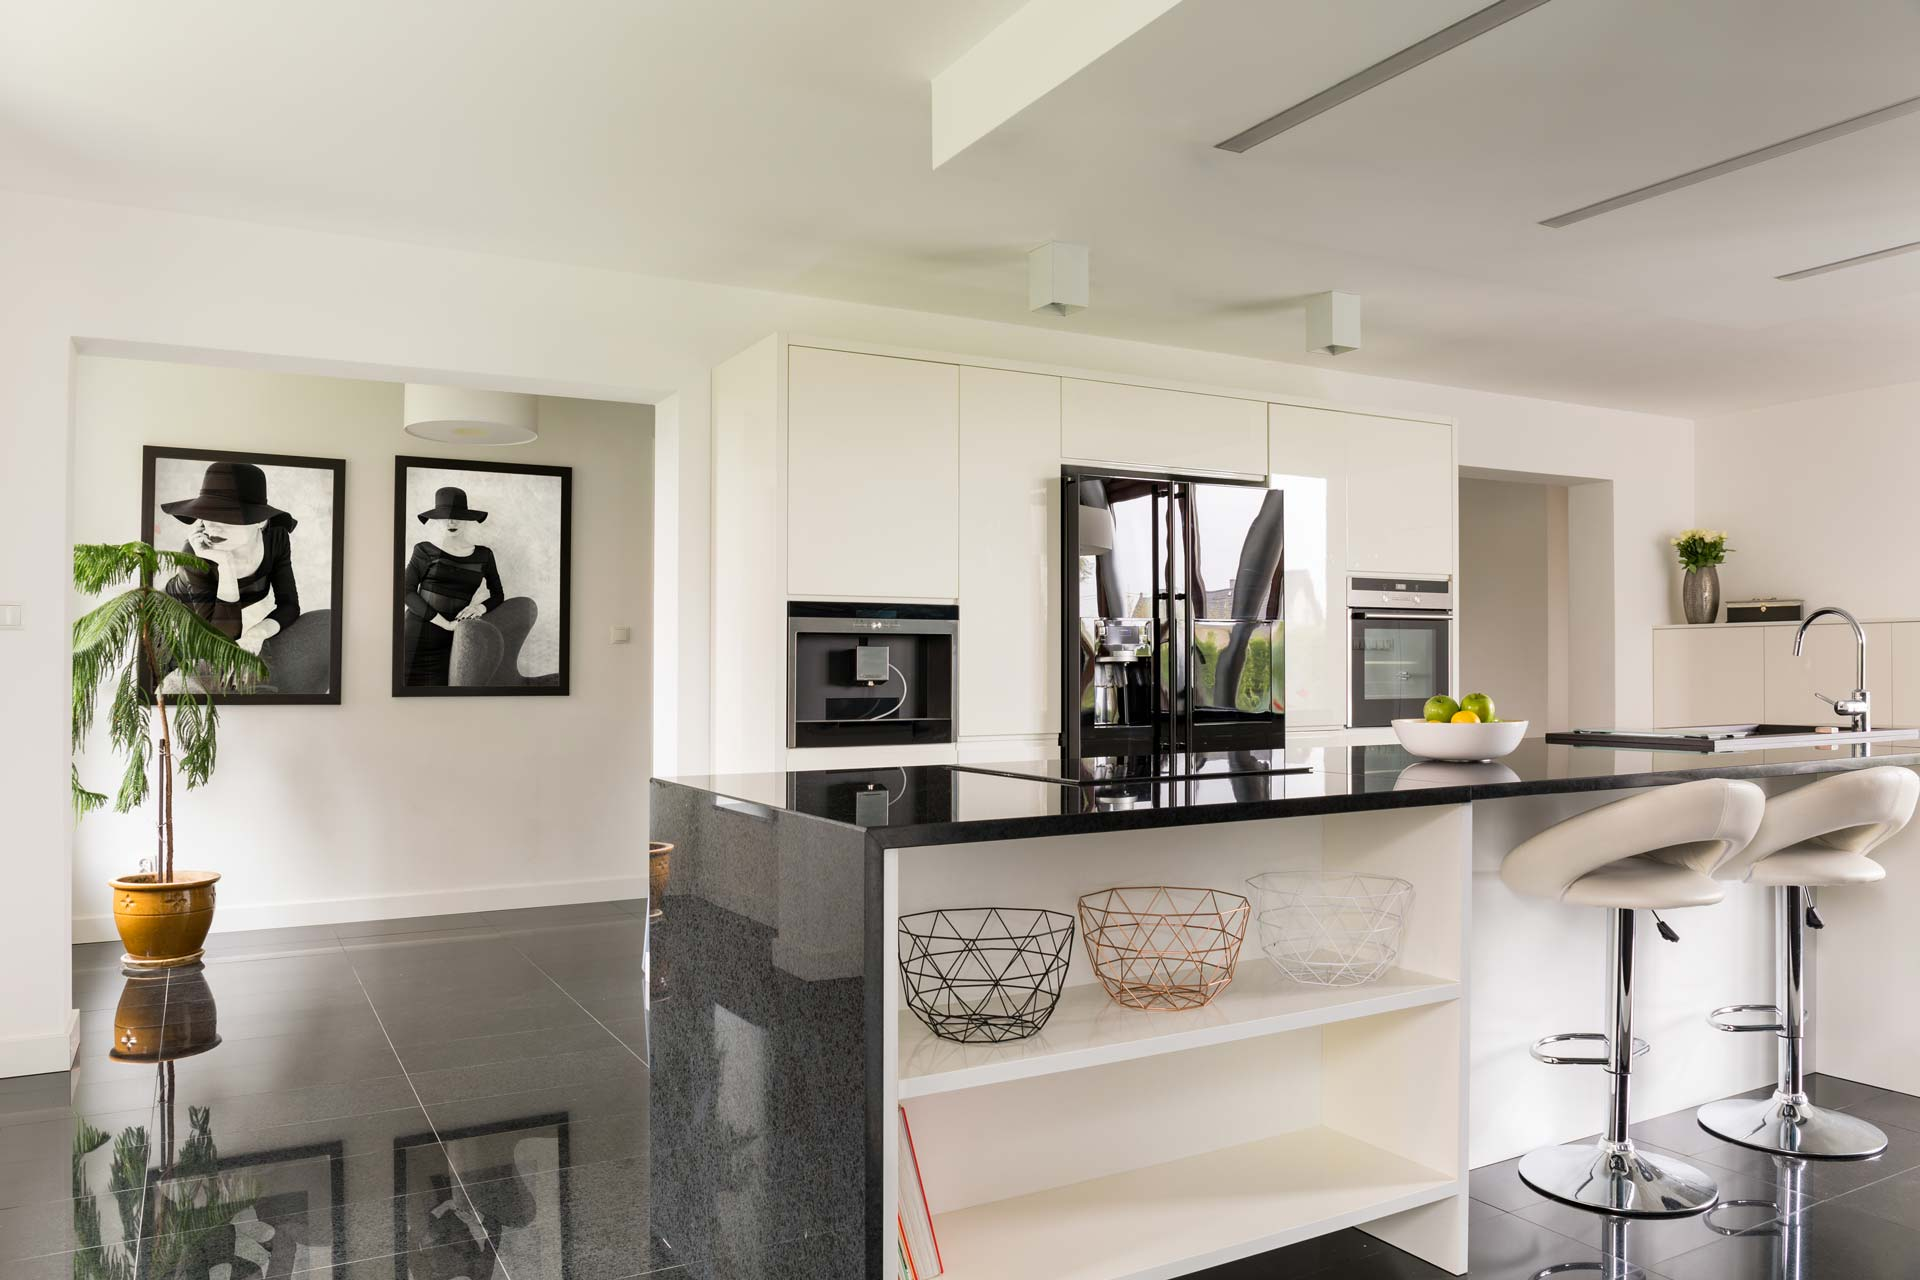 5 Things You Should Know About When Renovating A Condo